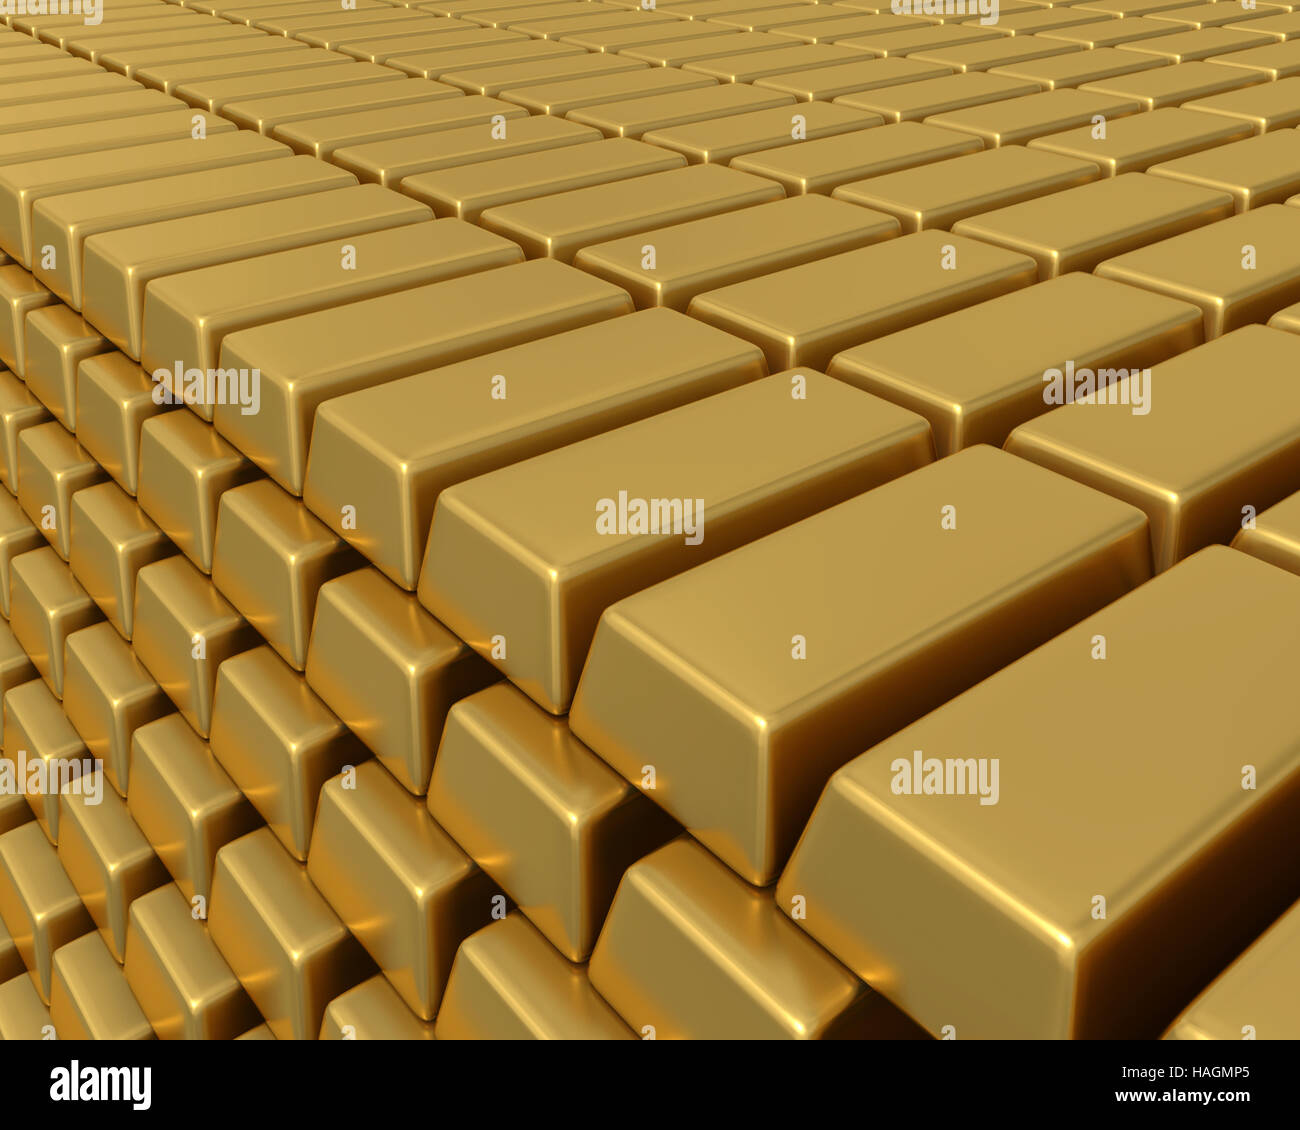 3D illustartion of thousands of gold bullion bars piled high representing enormous weath or assets. - Stock Image